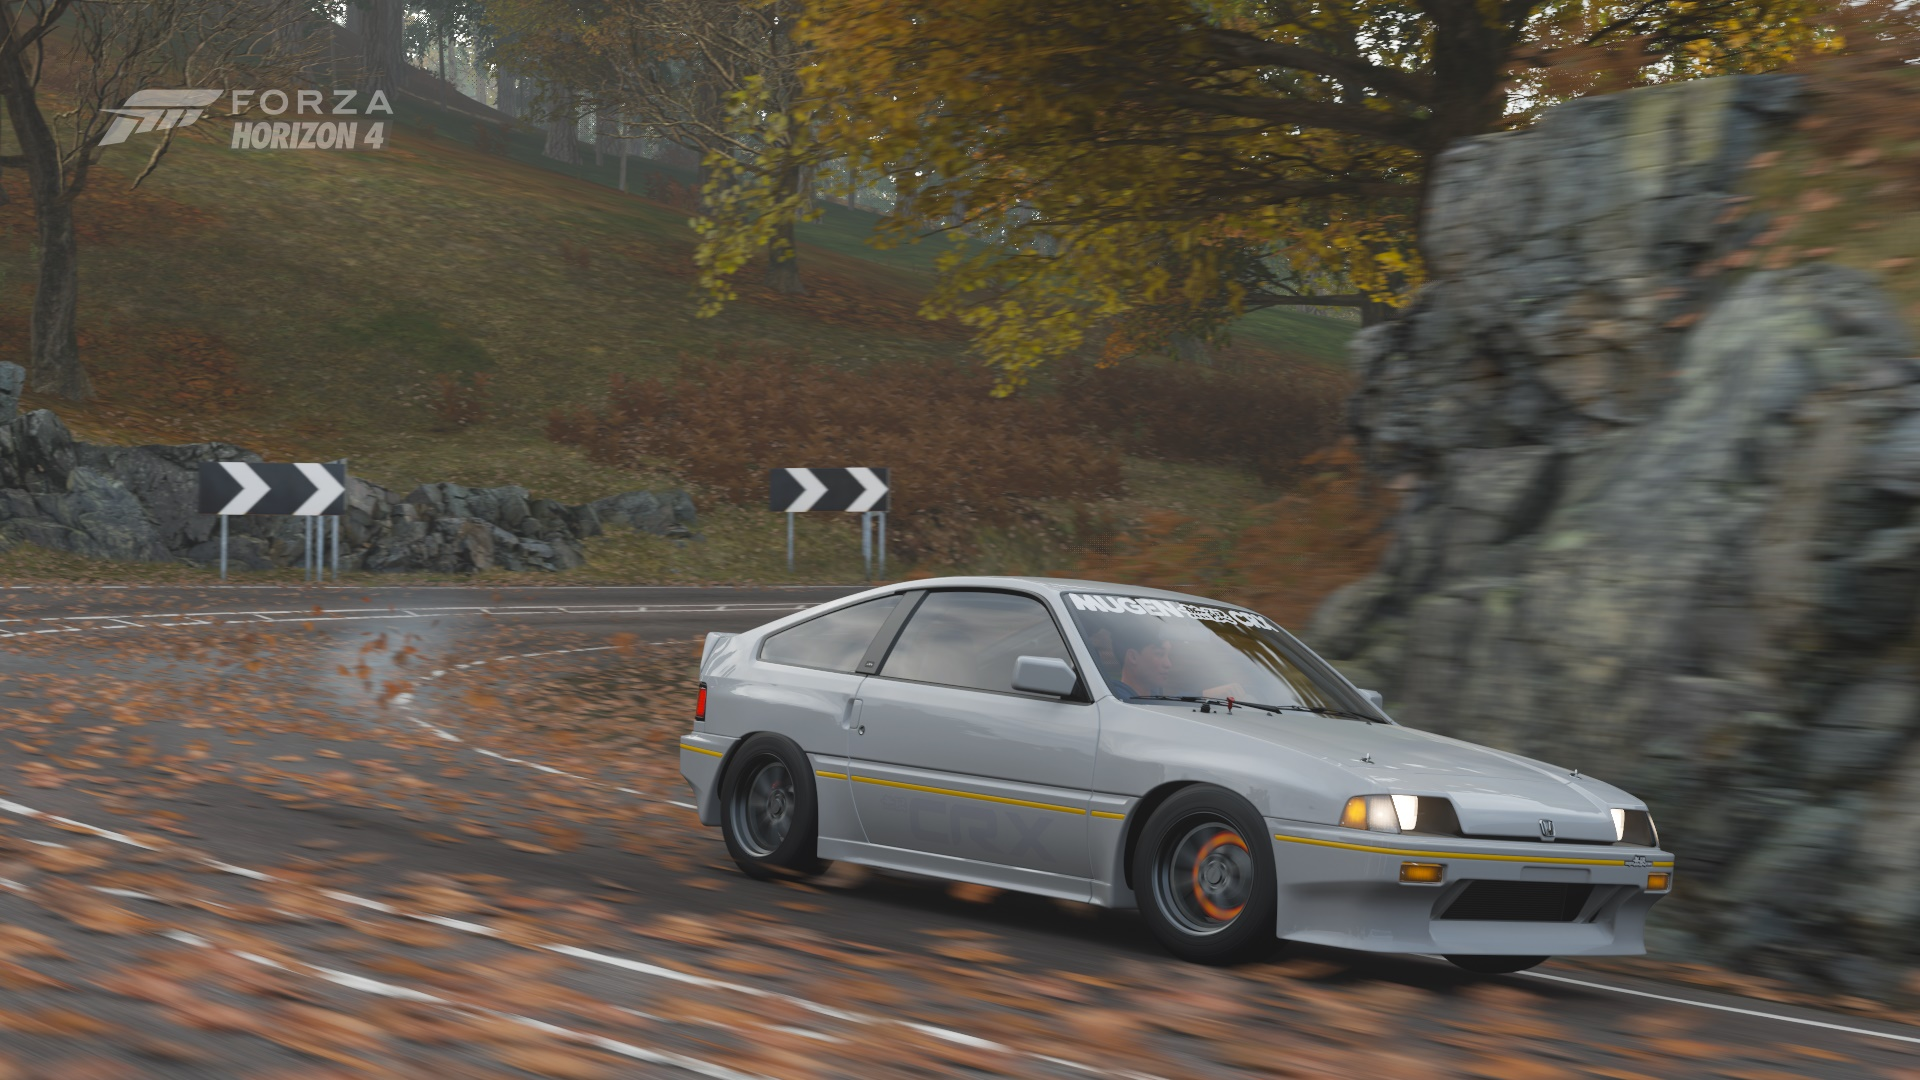 hight resolution of forza horizonripping the downhill in my 84 mugen crx